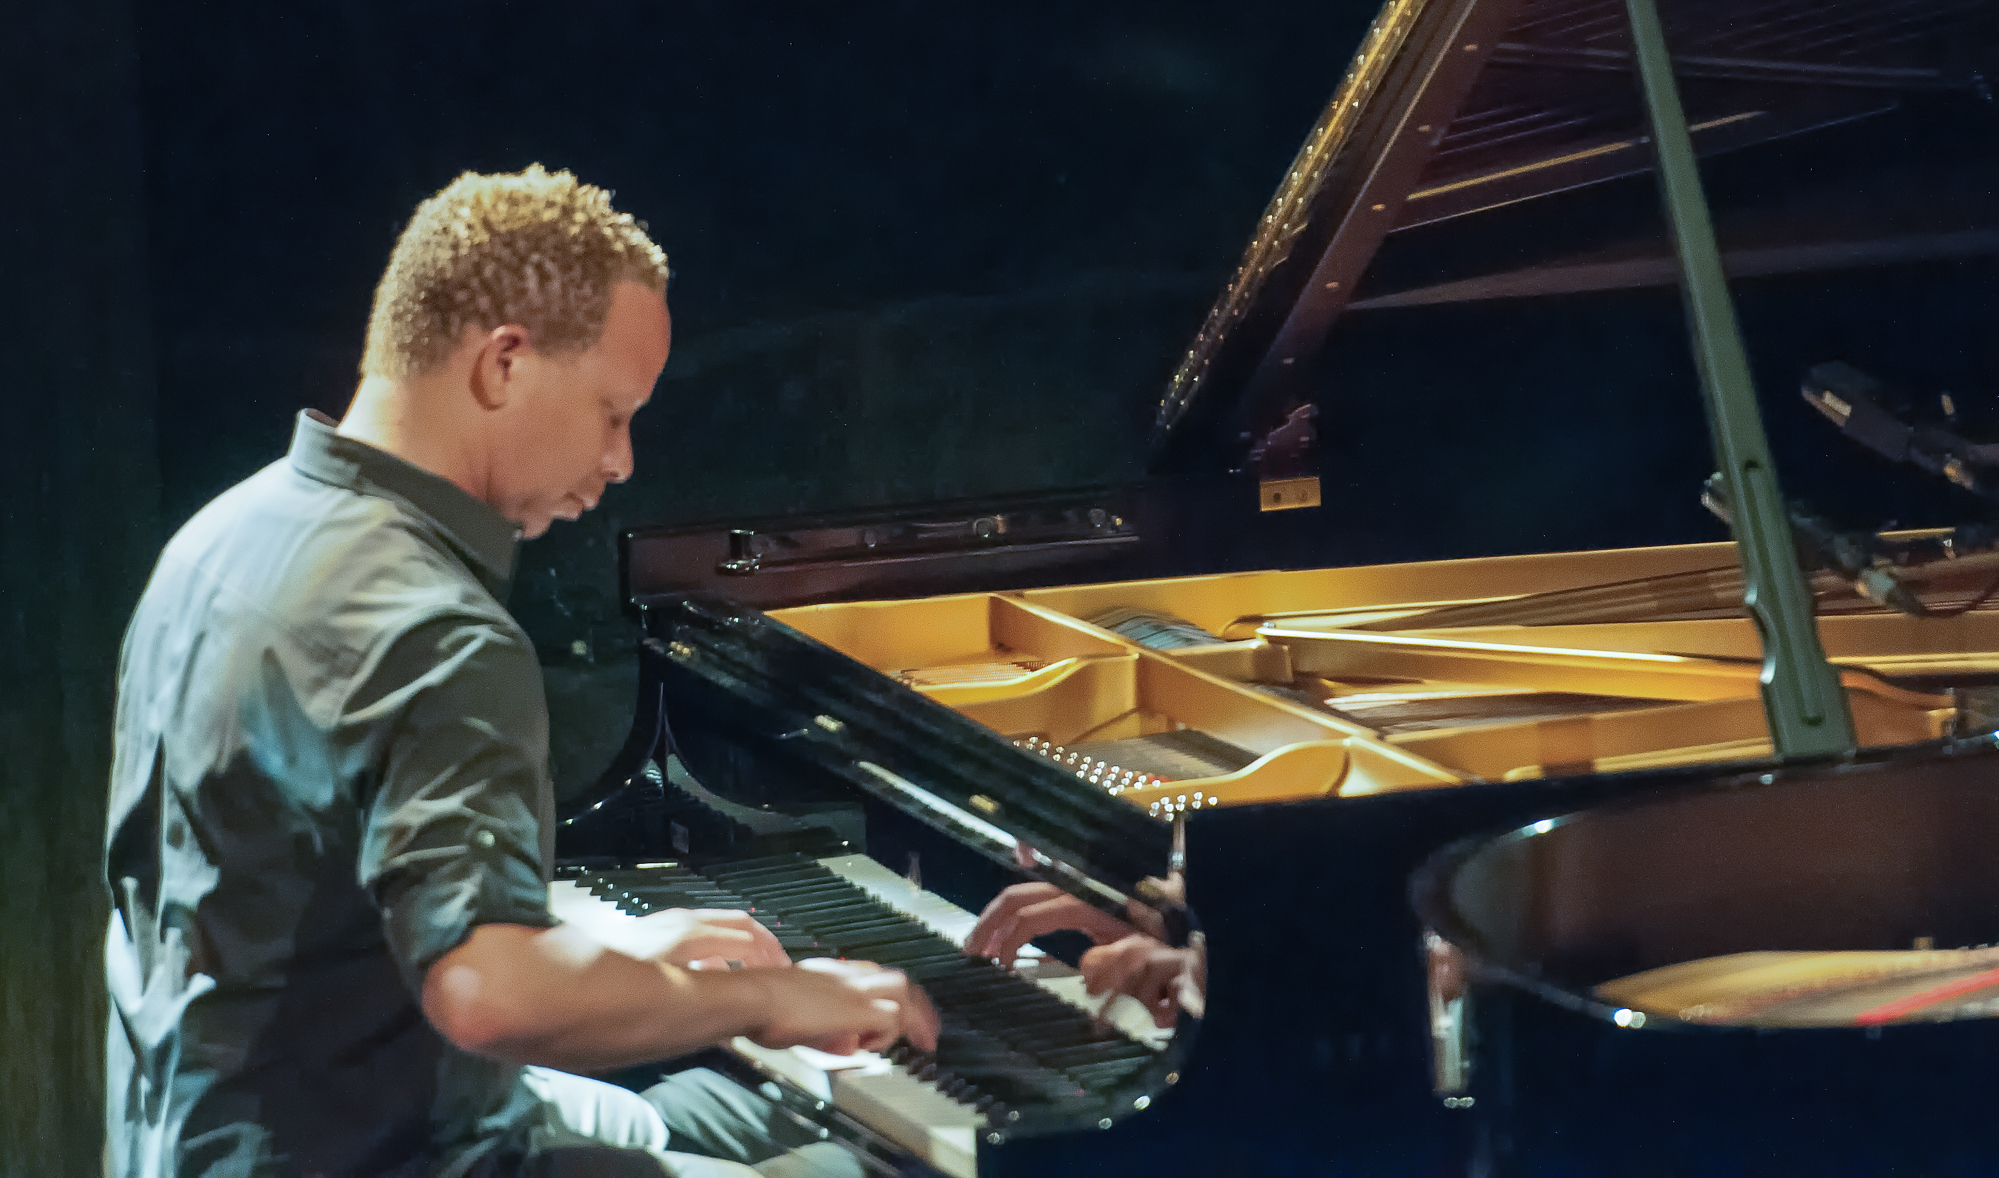 Craig taborn in duet with vijay iyer at the montreal international jazz festival 2013